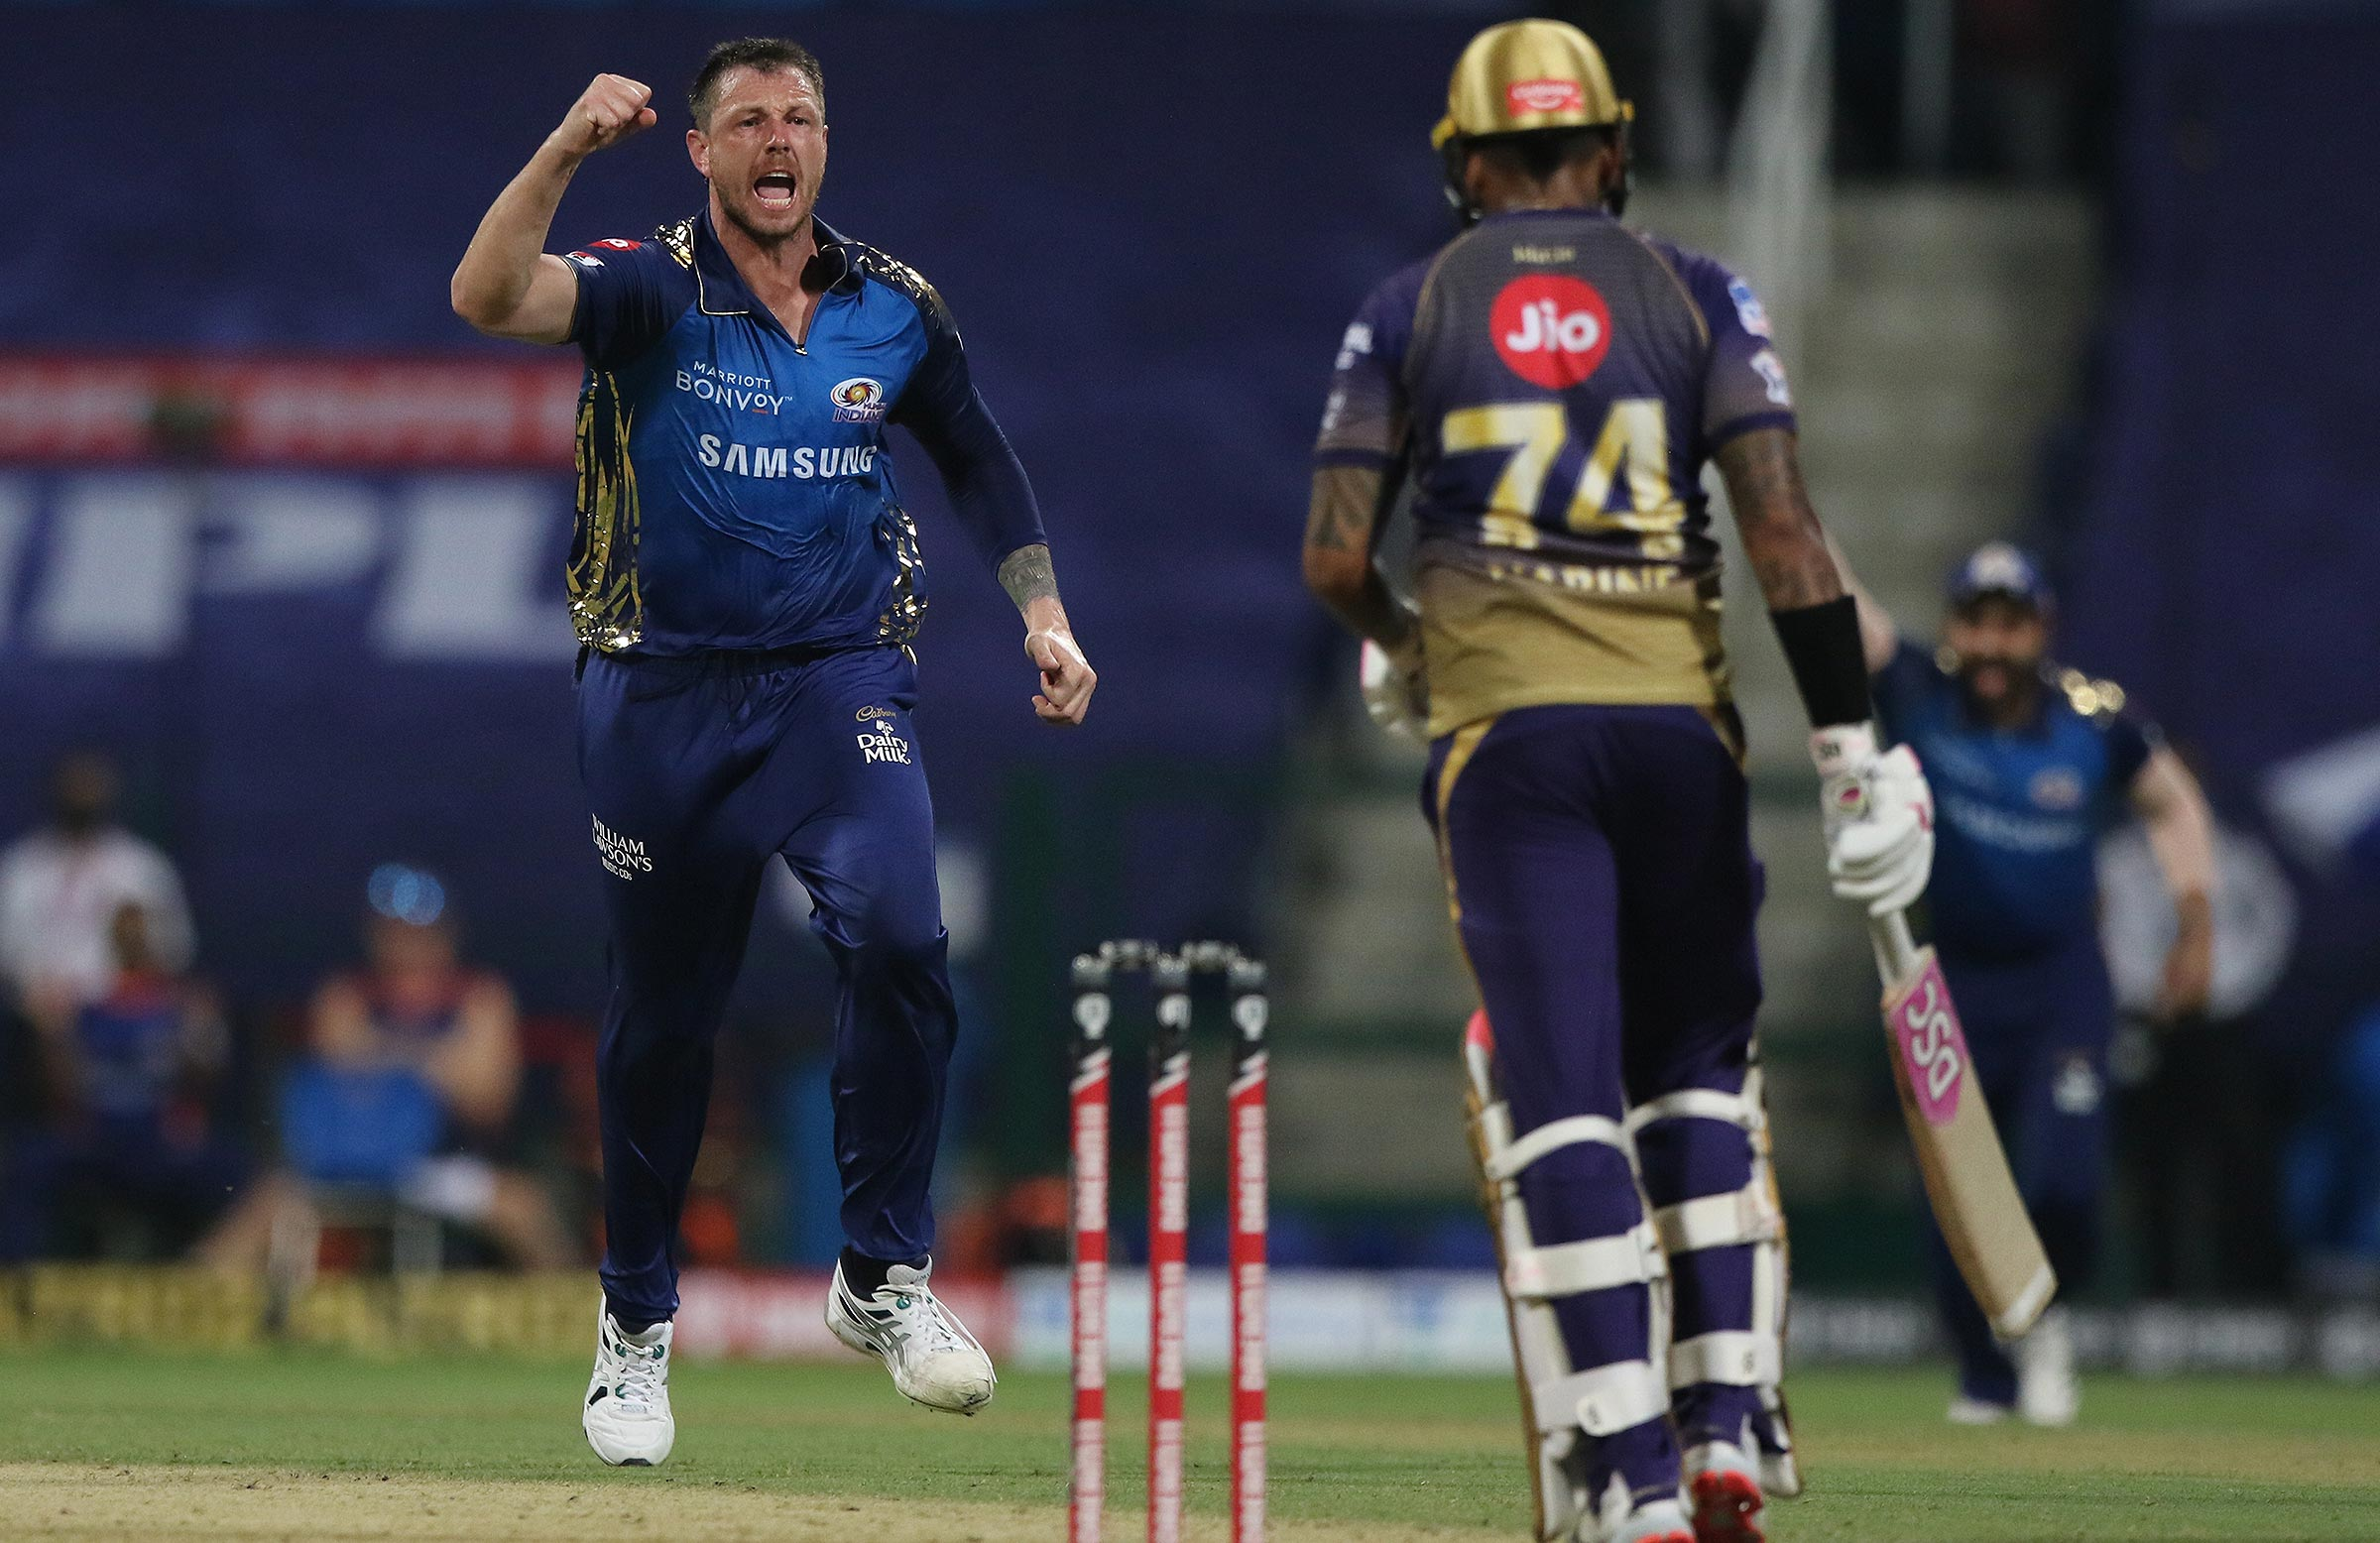 Pattinson has been in good form for the Mumbai Indians // BCCI-IPL